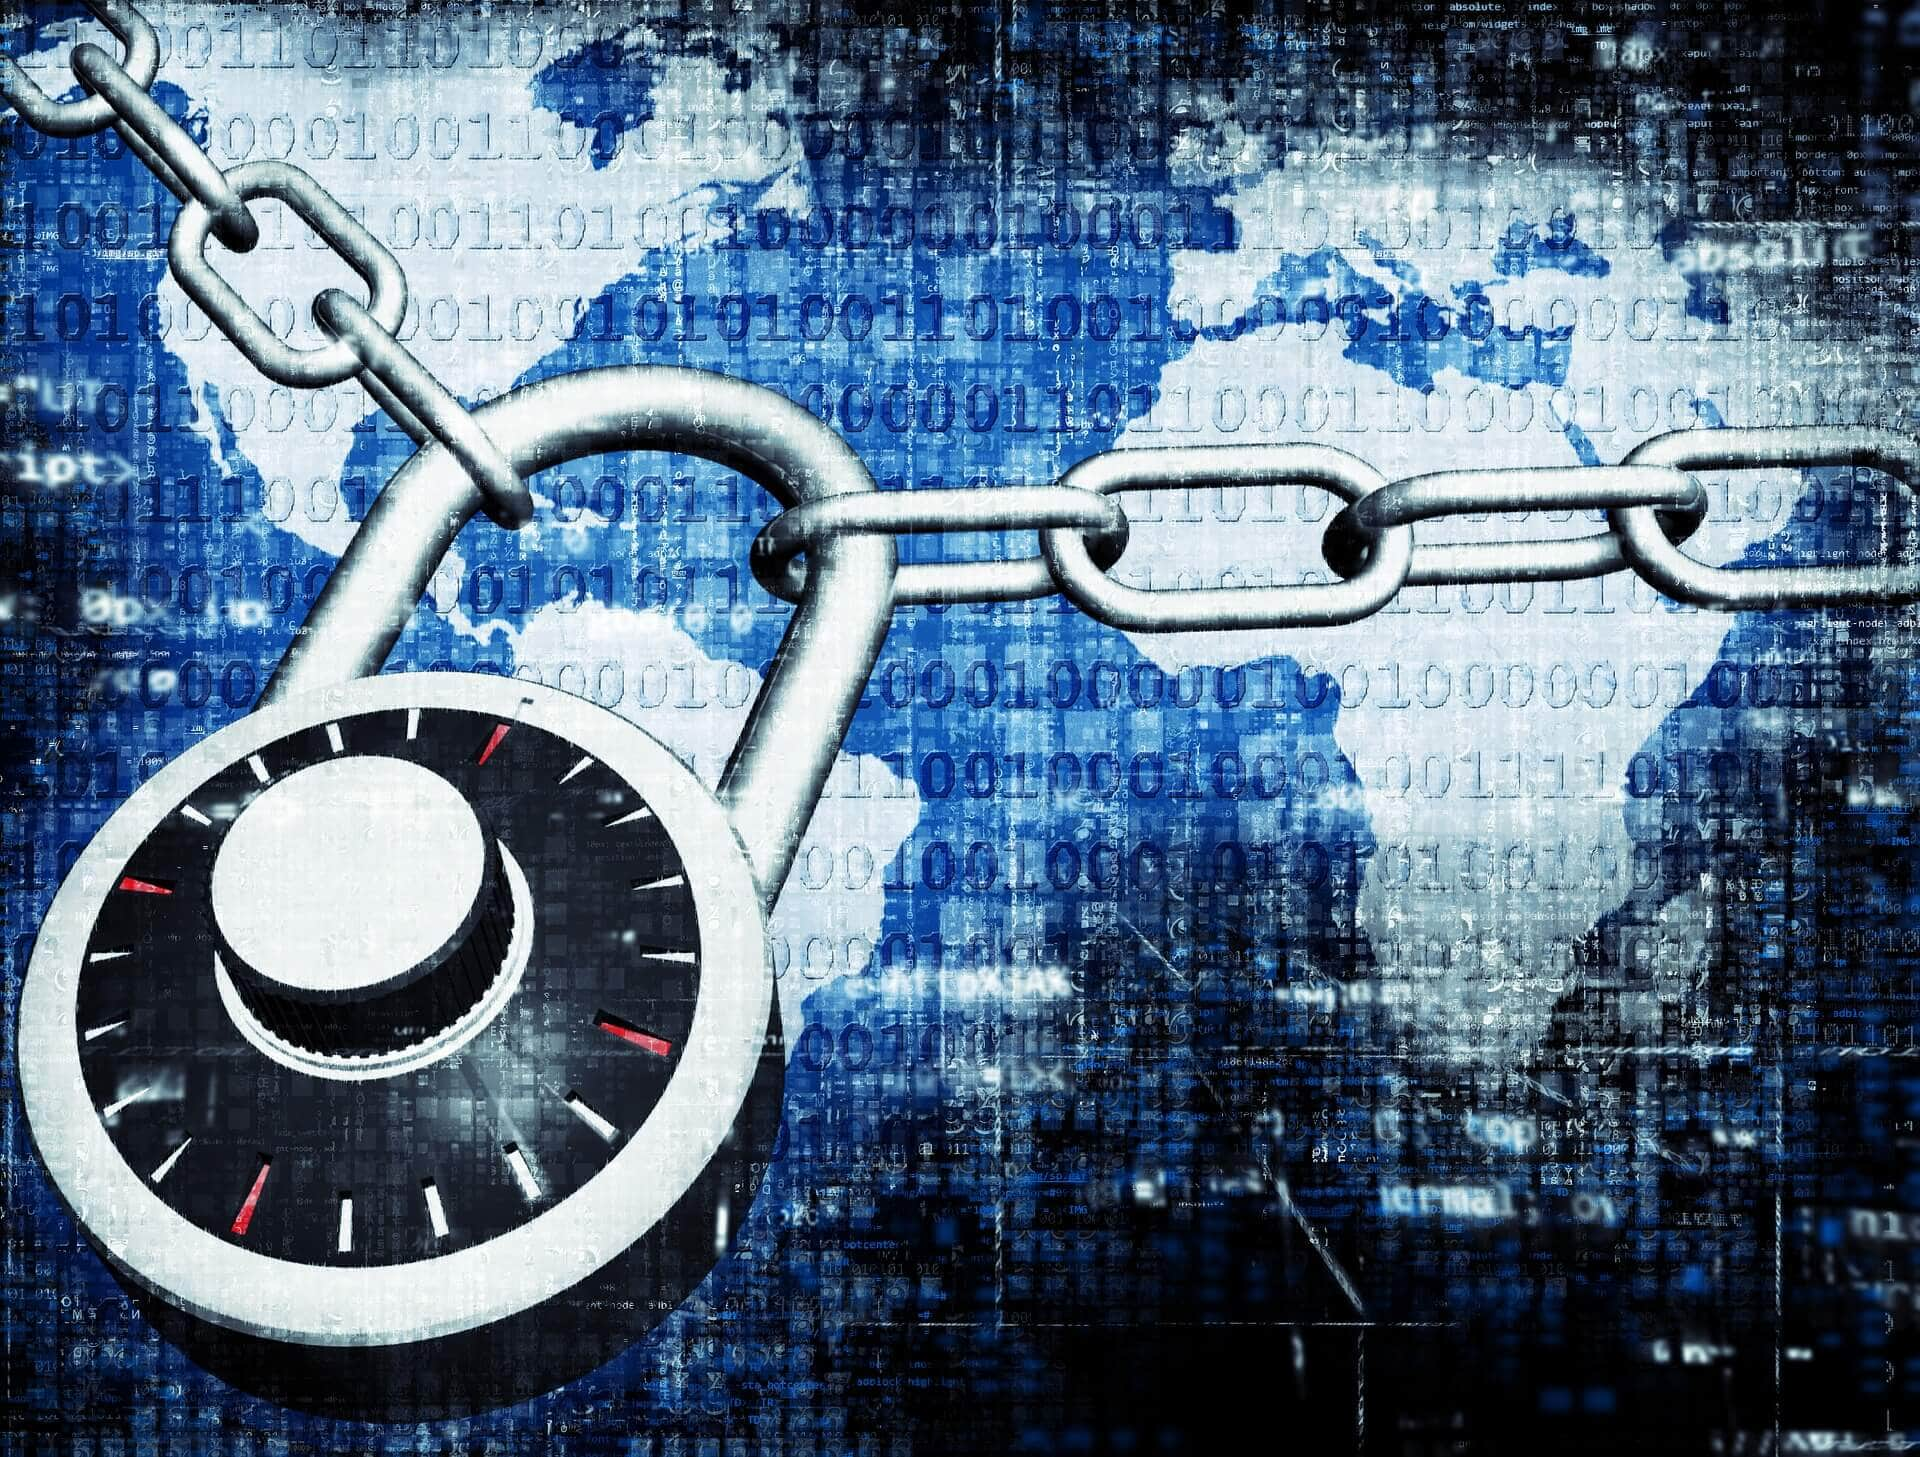 content/en-in/images/repository/isc/2020/how-to-protect-your-internet-privacy.jpg